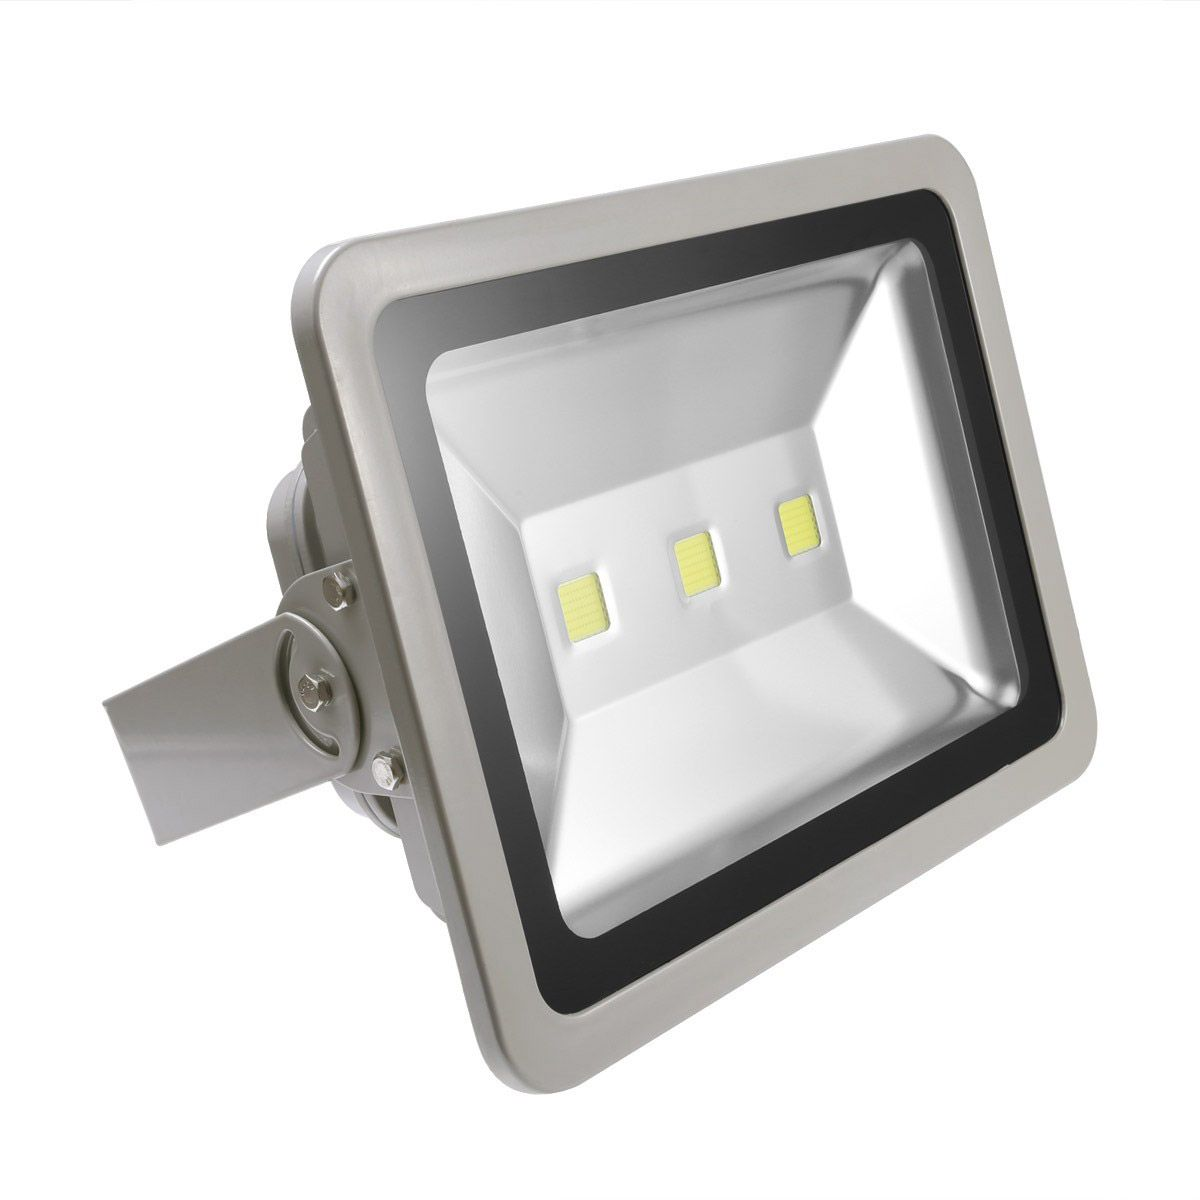 Led Outdoor Flood Light Bulbs Fair Choose From A Huge Range Of Highquality #durable And Powerful Design Inspiration